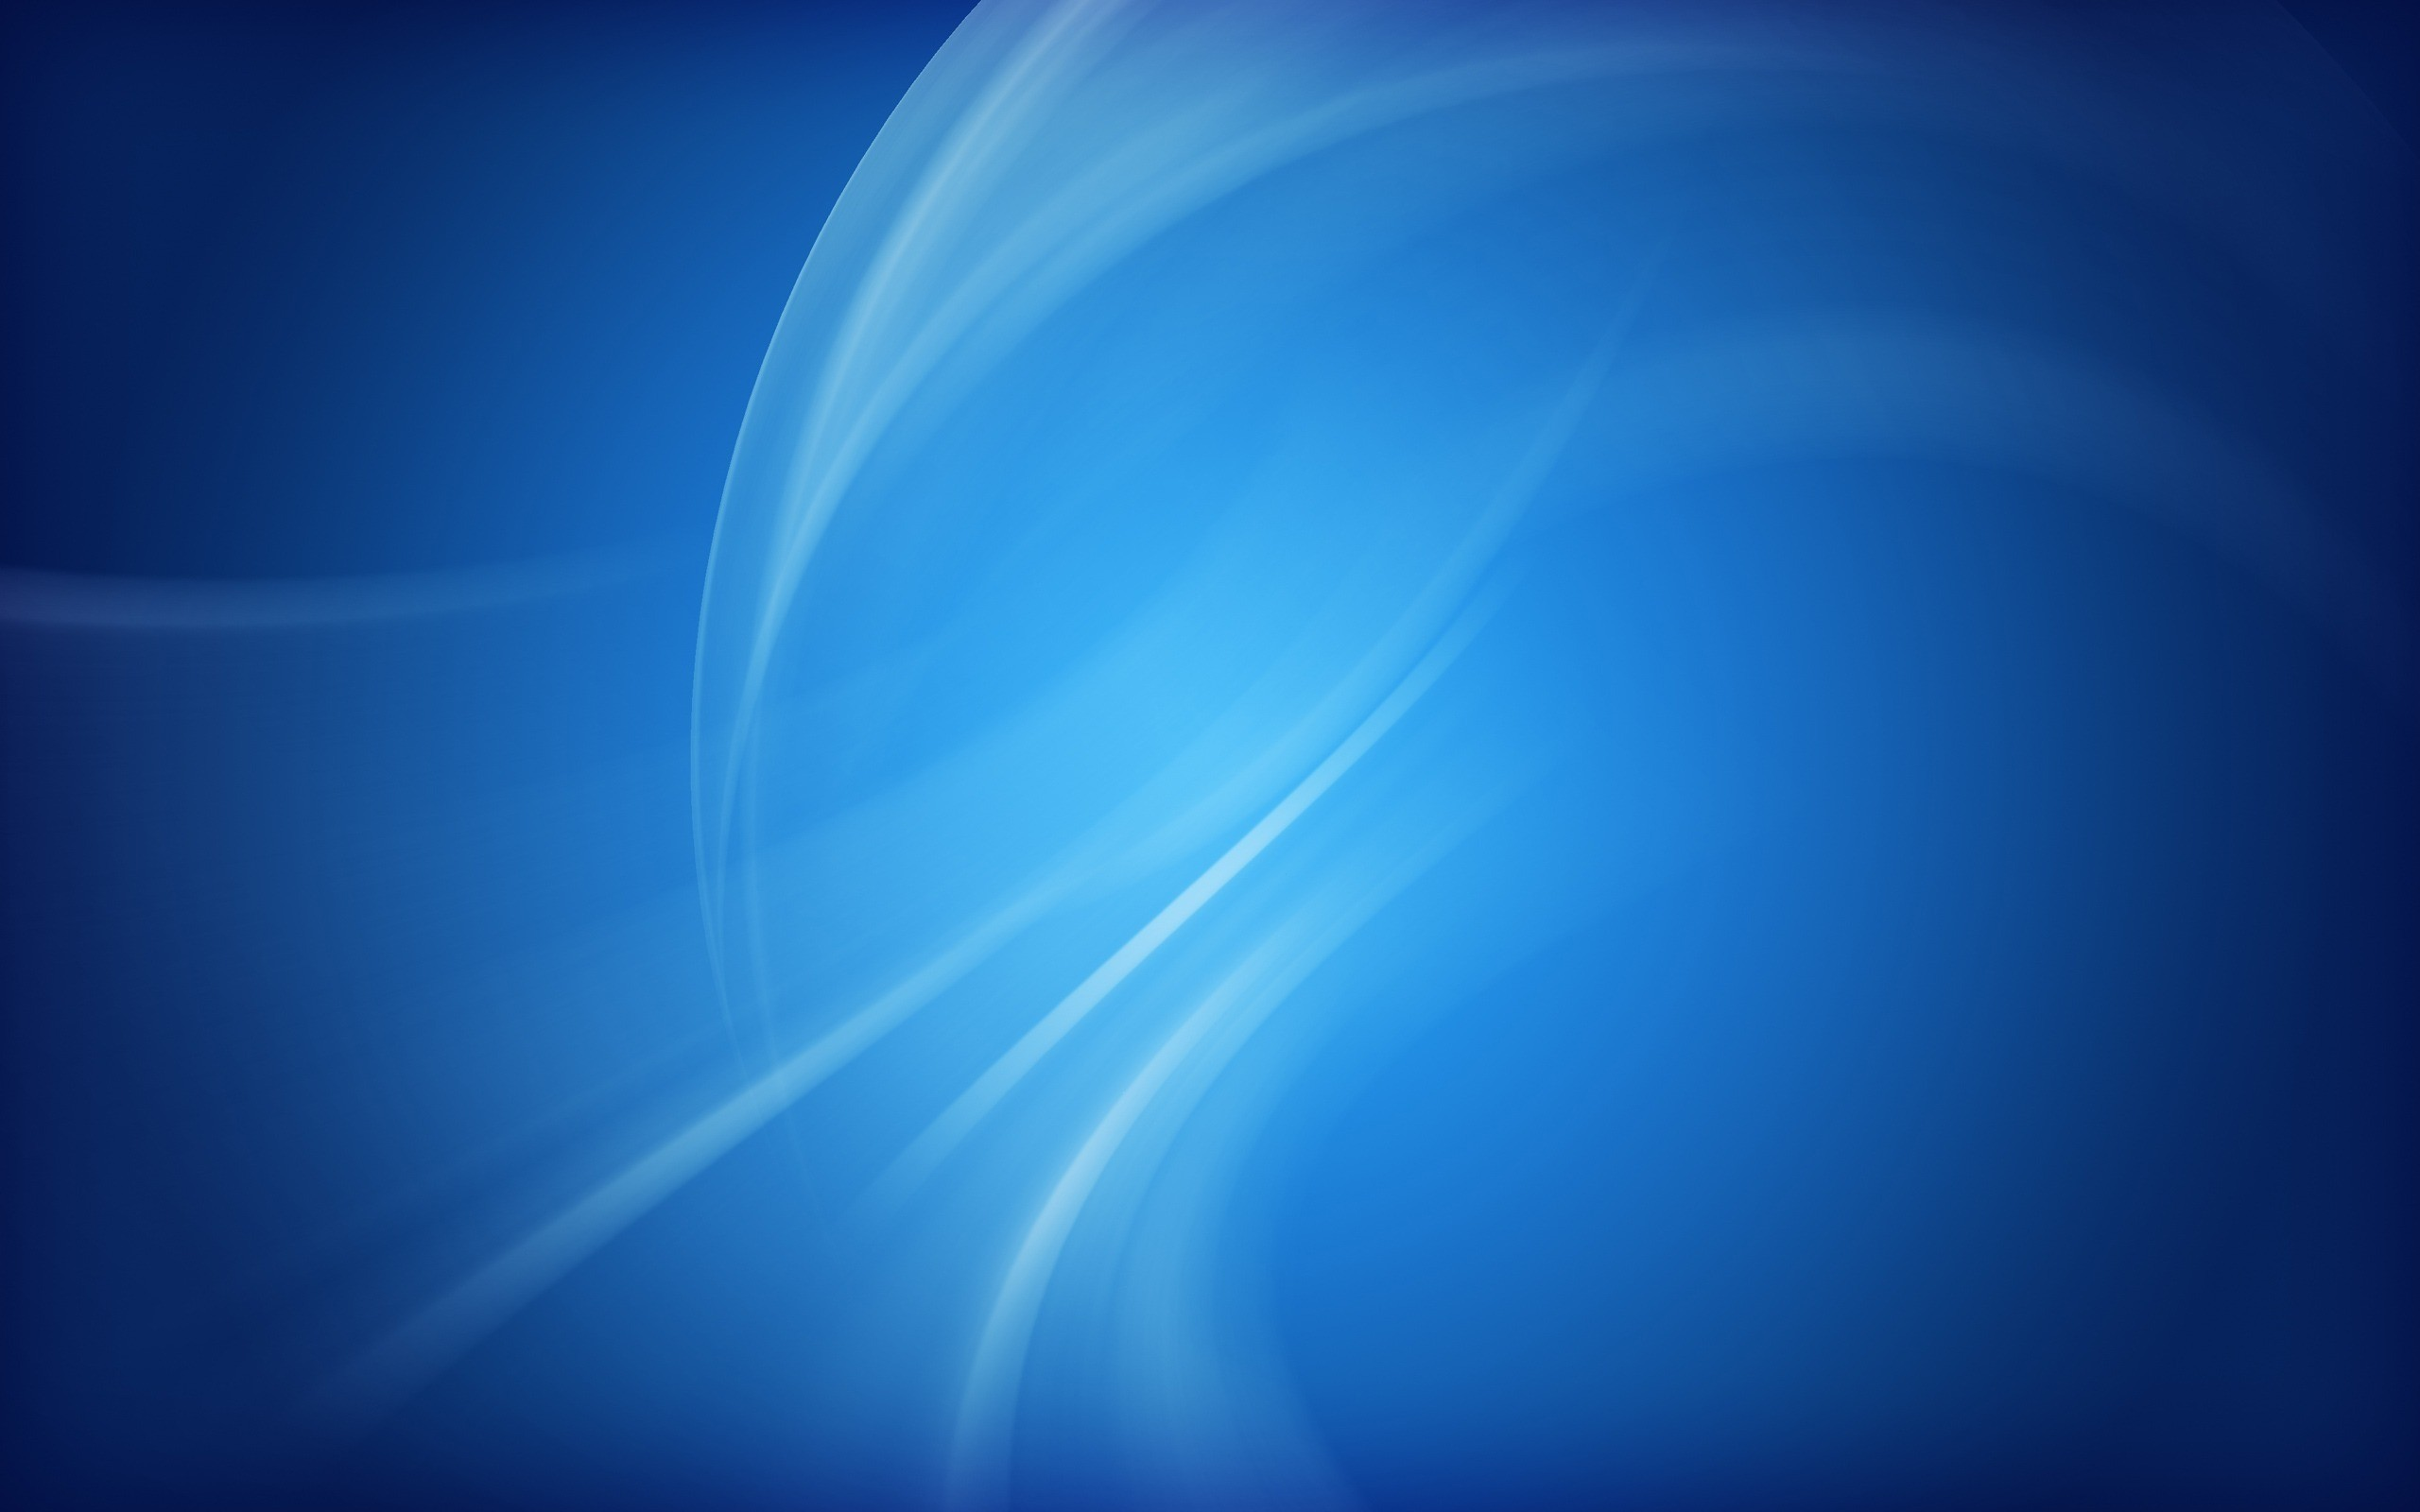 Blue · Line TextureBlue Wallpapers